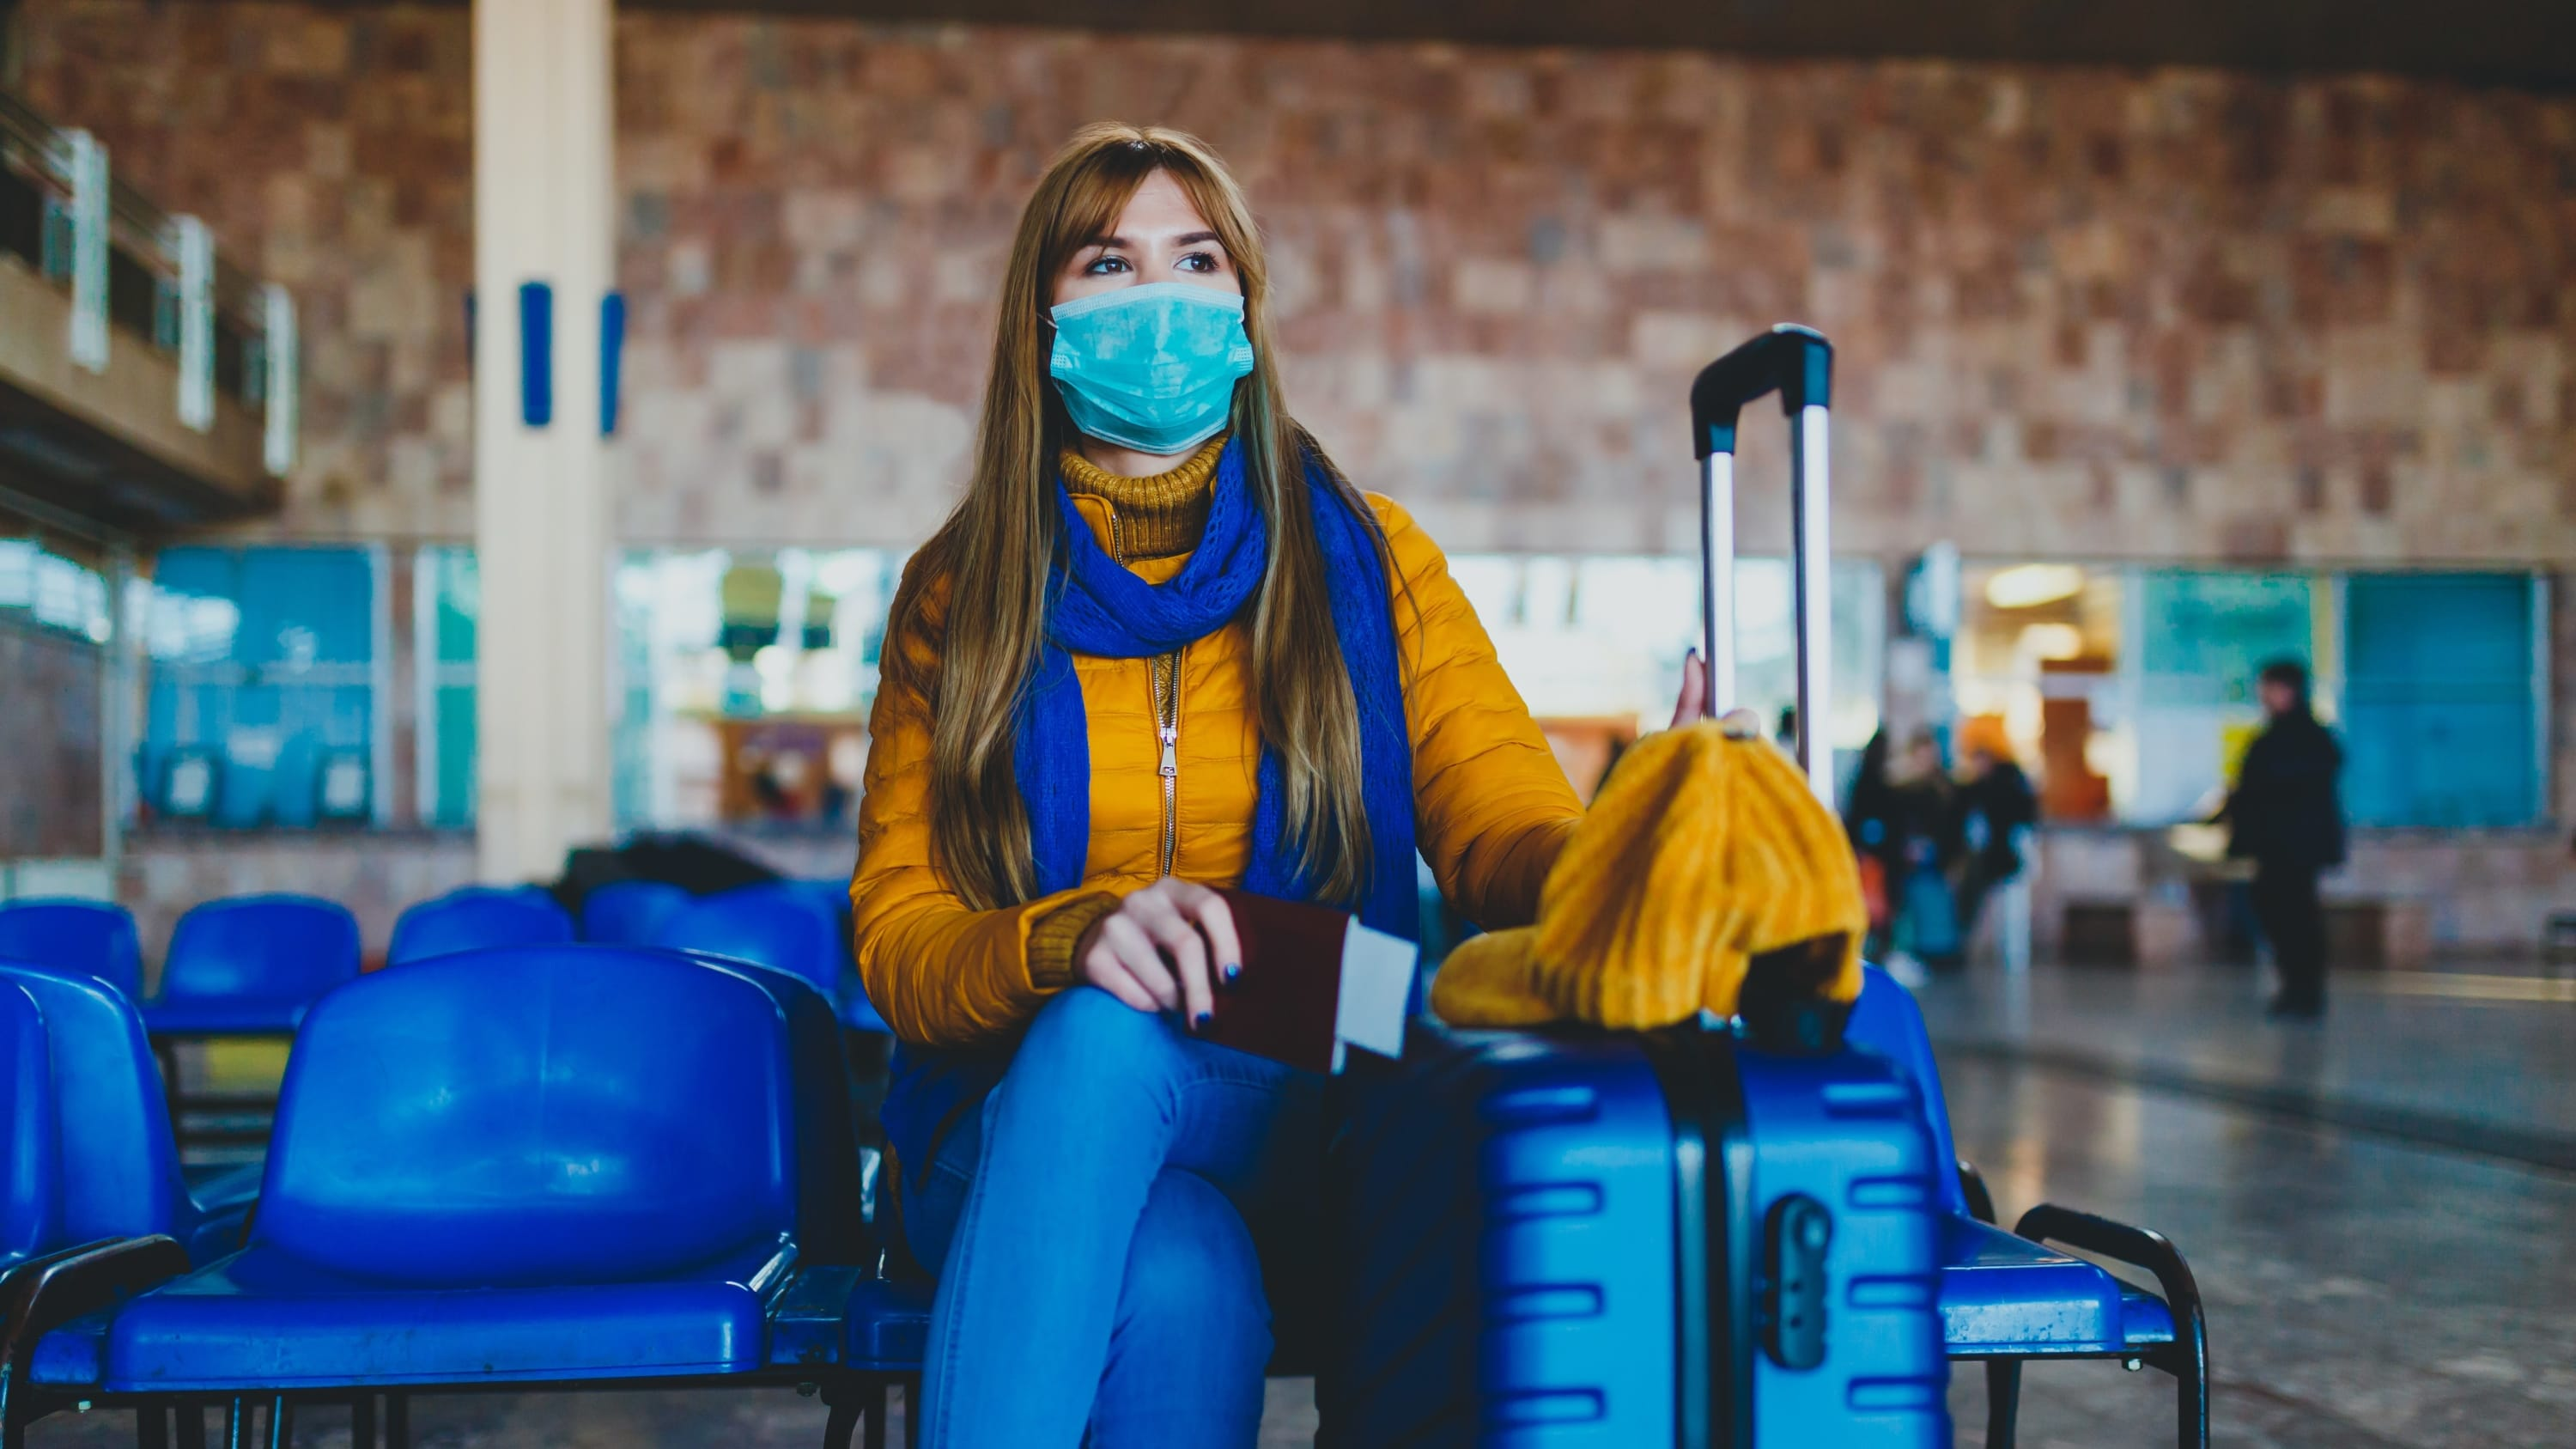 woman in mask at airport, following CDC guidelines for COVID-19 infection prevention